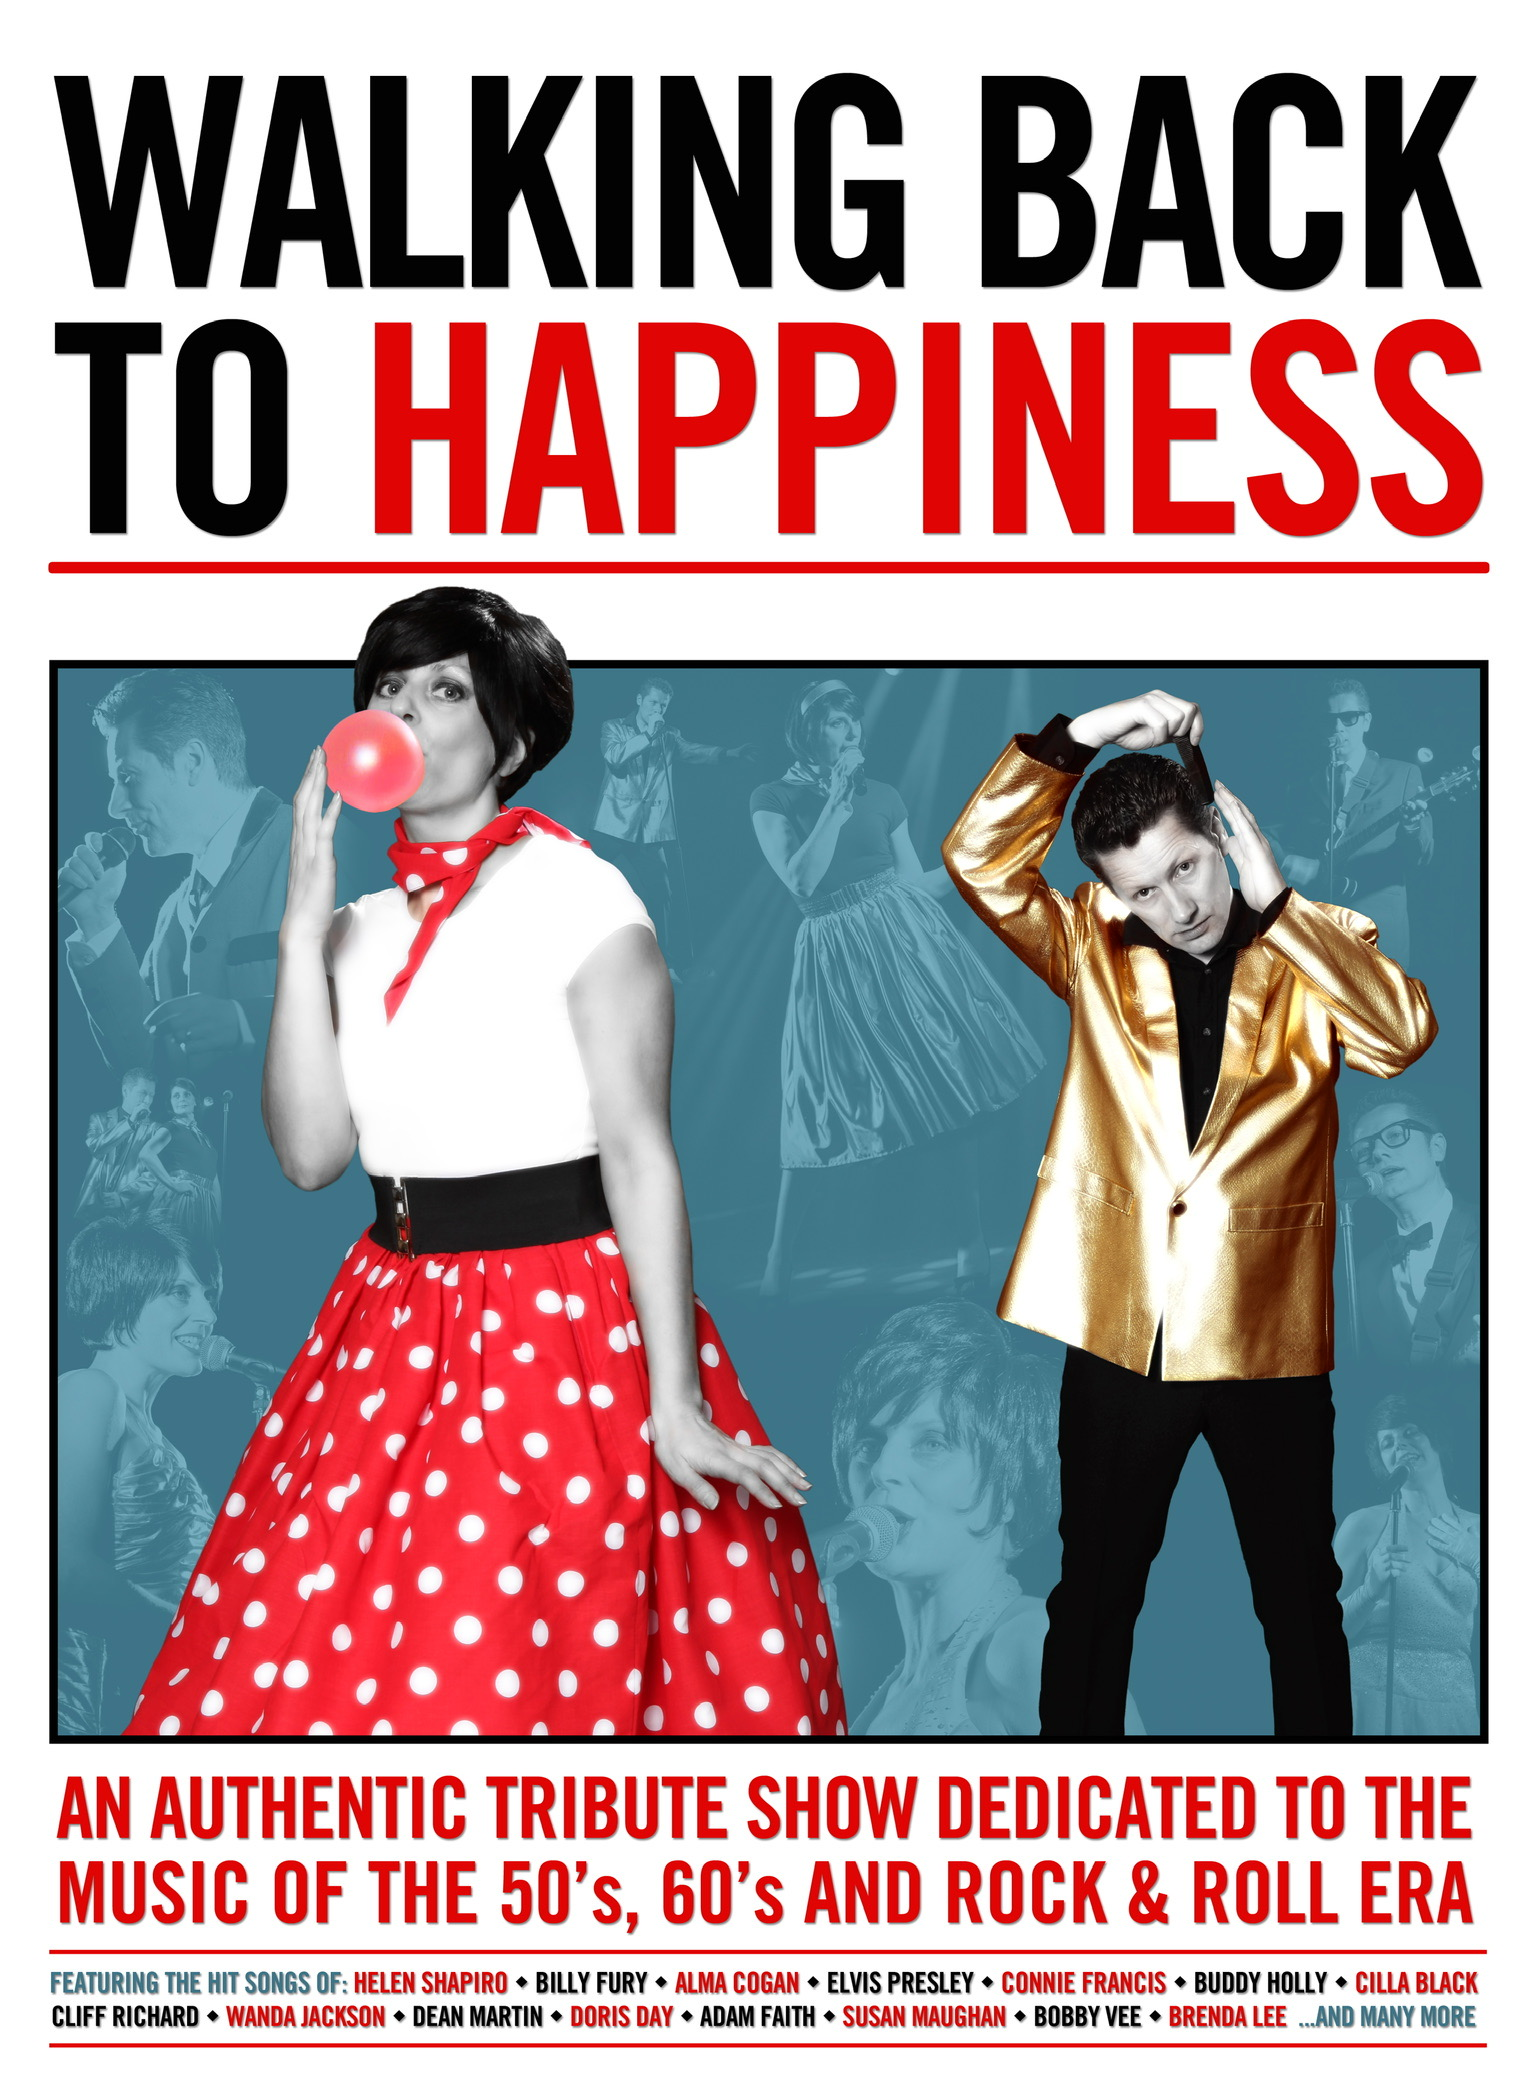 Walking Back To Happiness 50/60's Show - Postponed